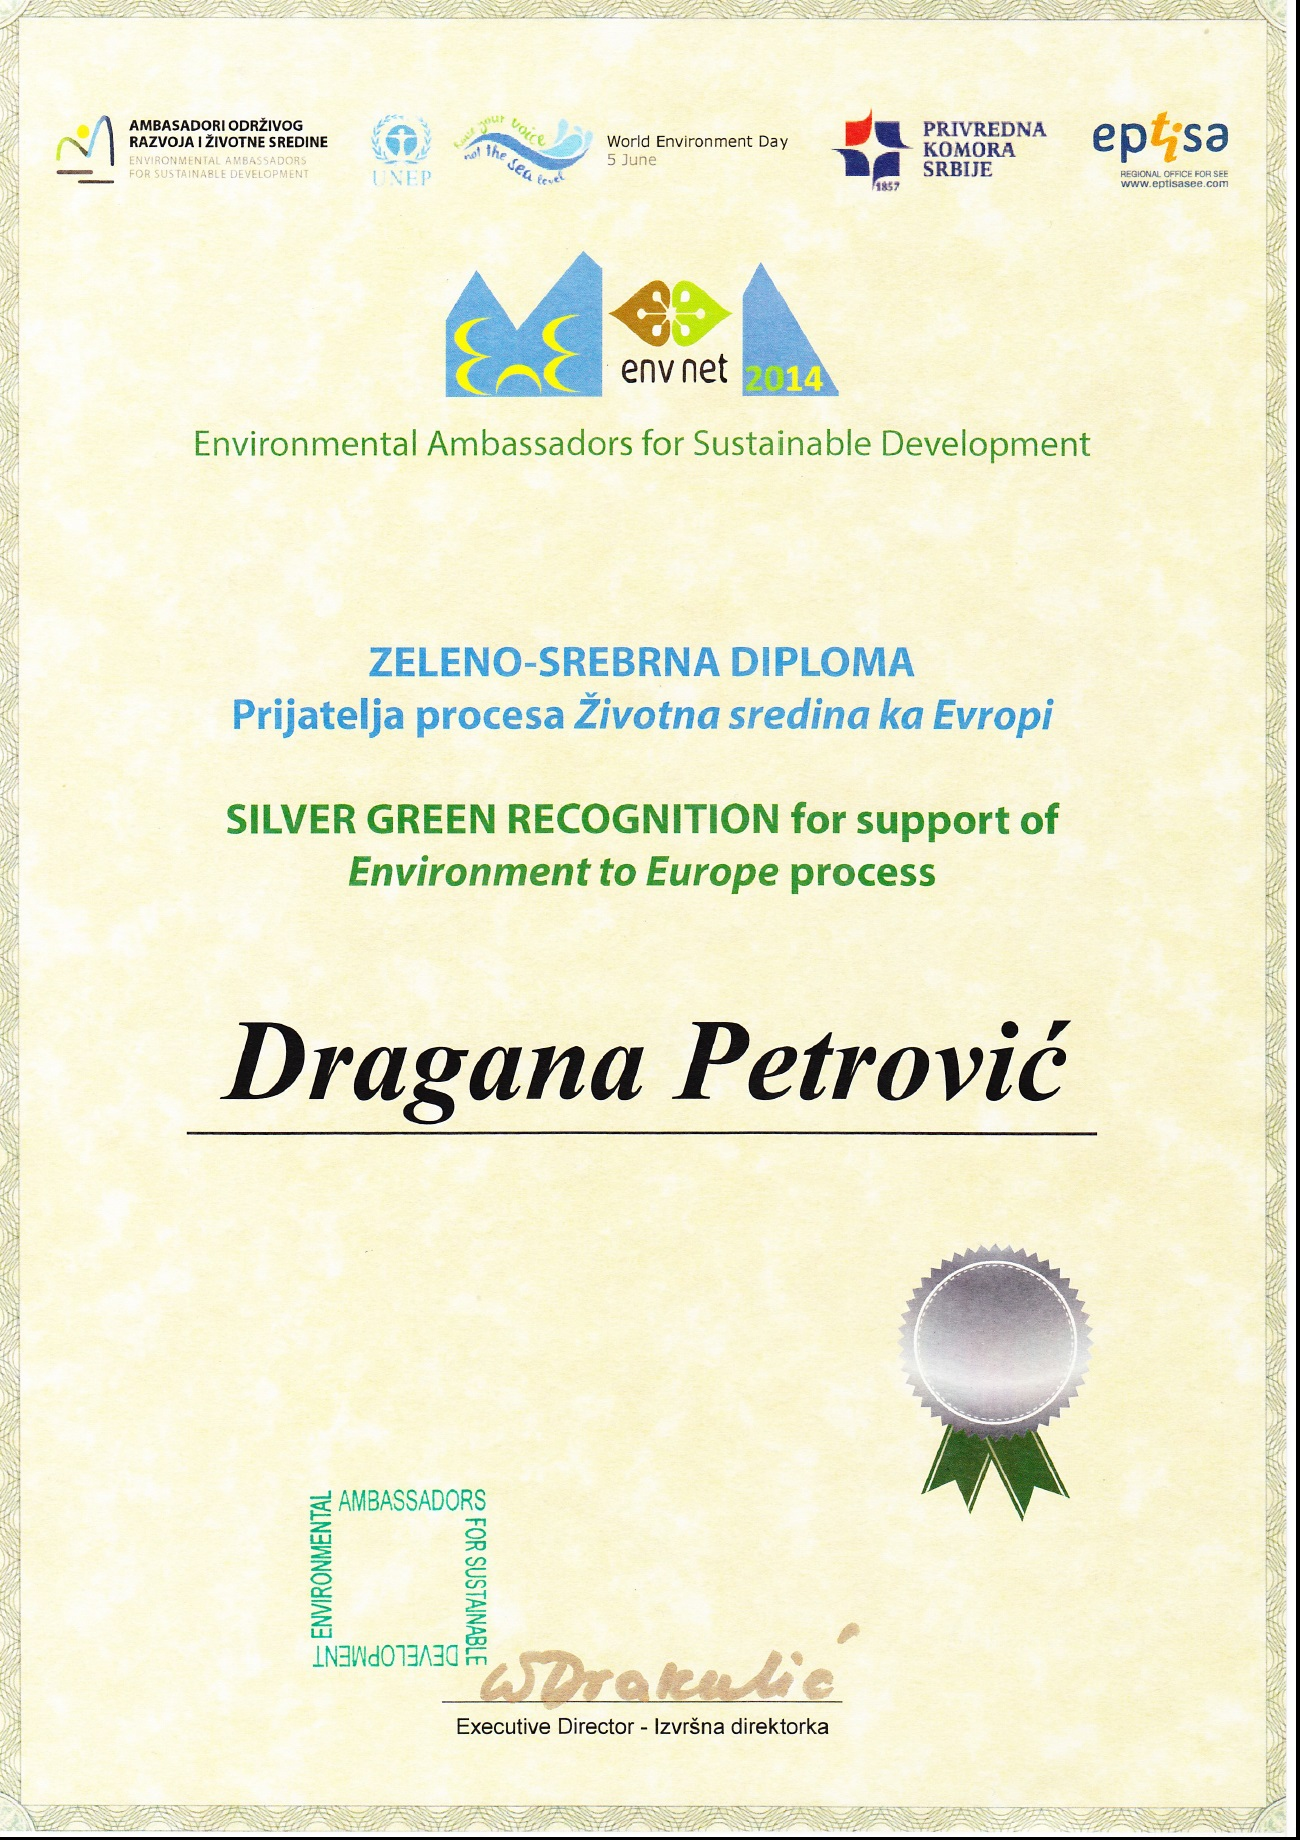 Dragana Petrovic Victoria consulting recognition